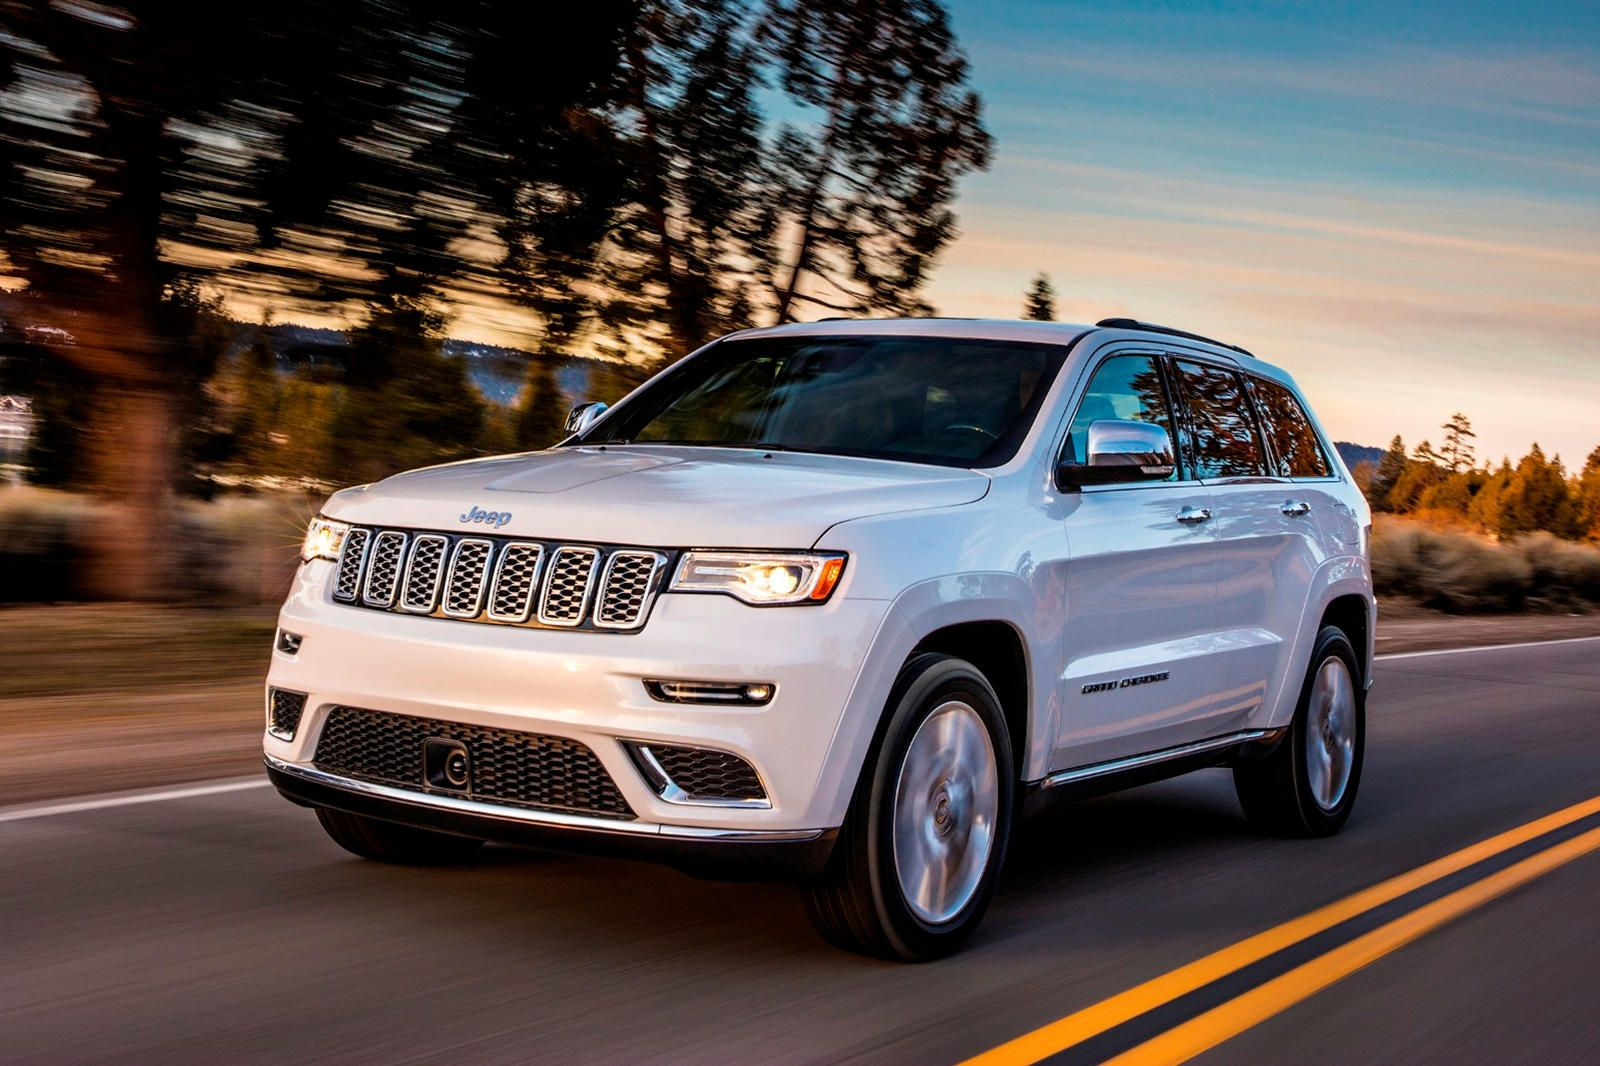 2019 Jeep Grand Cherokee Arrives With New Standard Safety Tech And Limited X Model 2017 Jeep Grand Cherokee Jeep